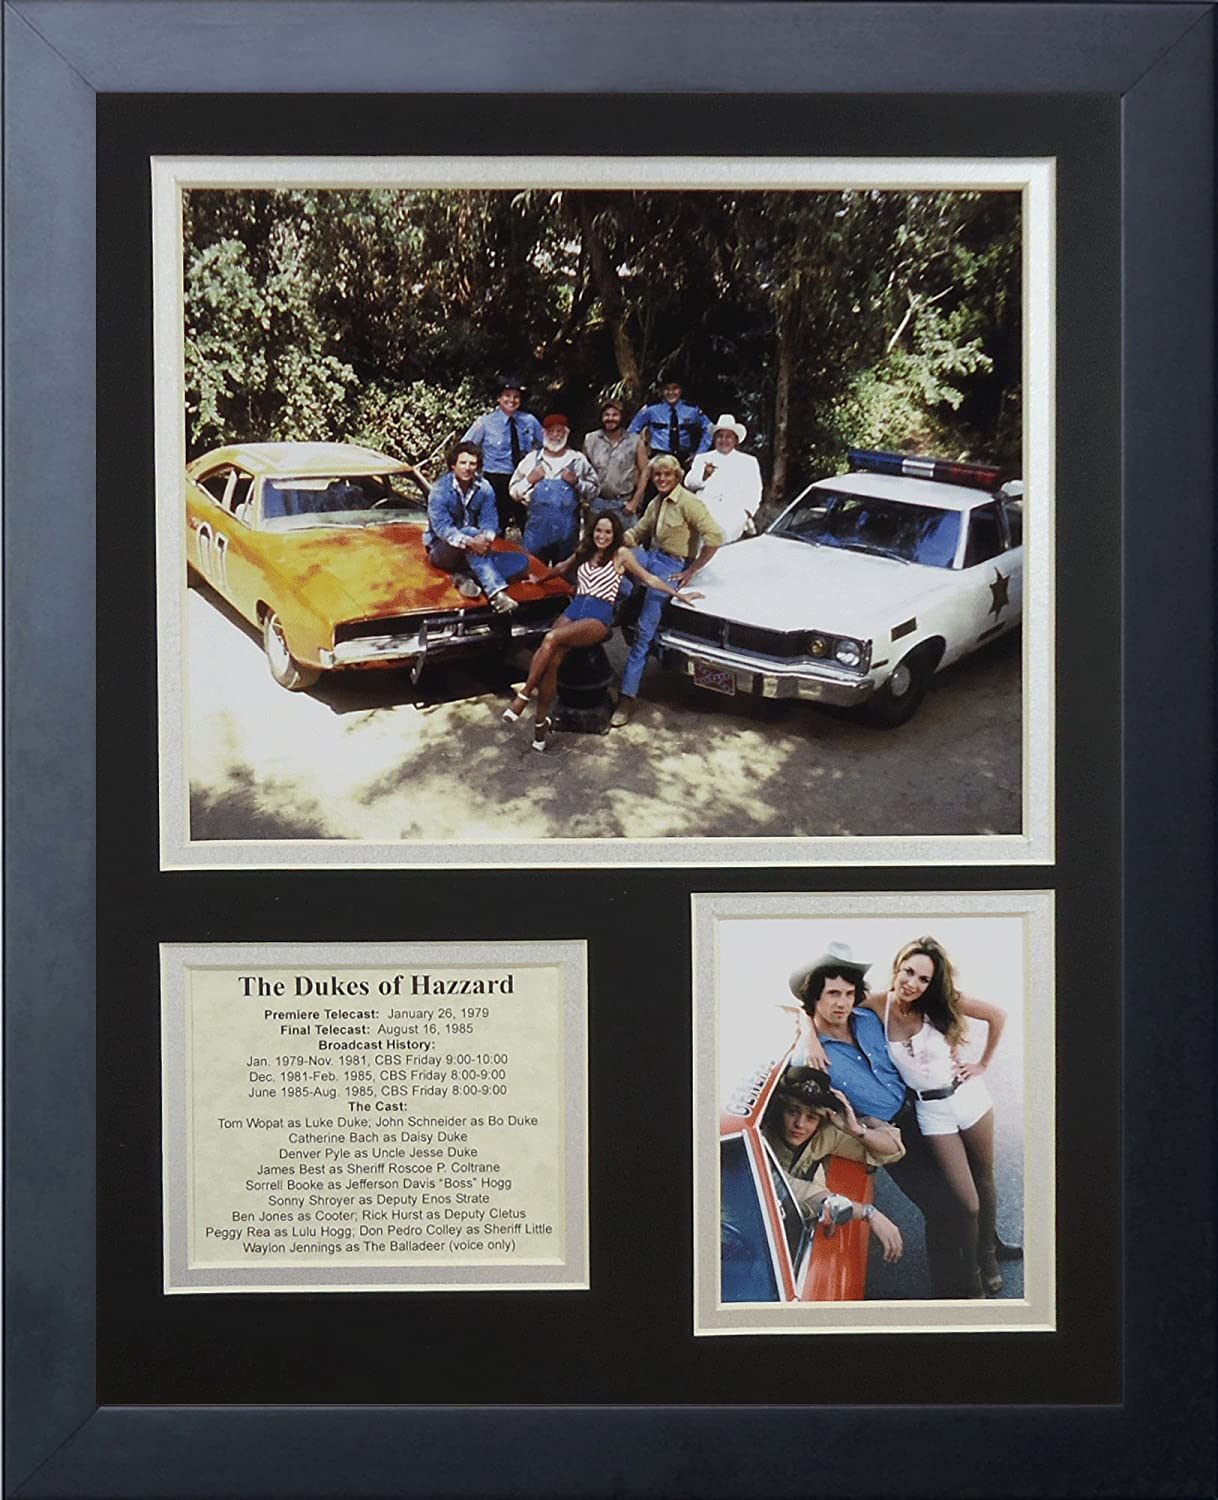 "The Dukes of Hazzard 11"" x 14"" Framed Photo Collage by Legends Never Die, Inc."